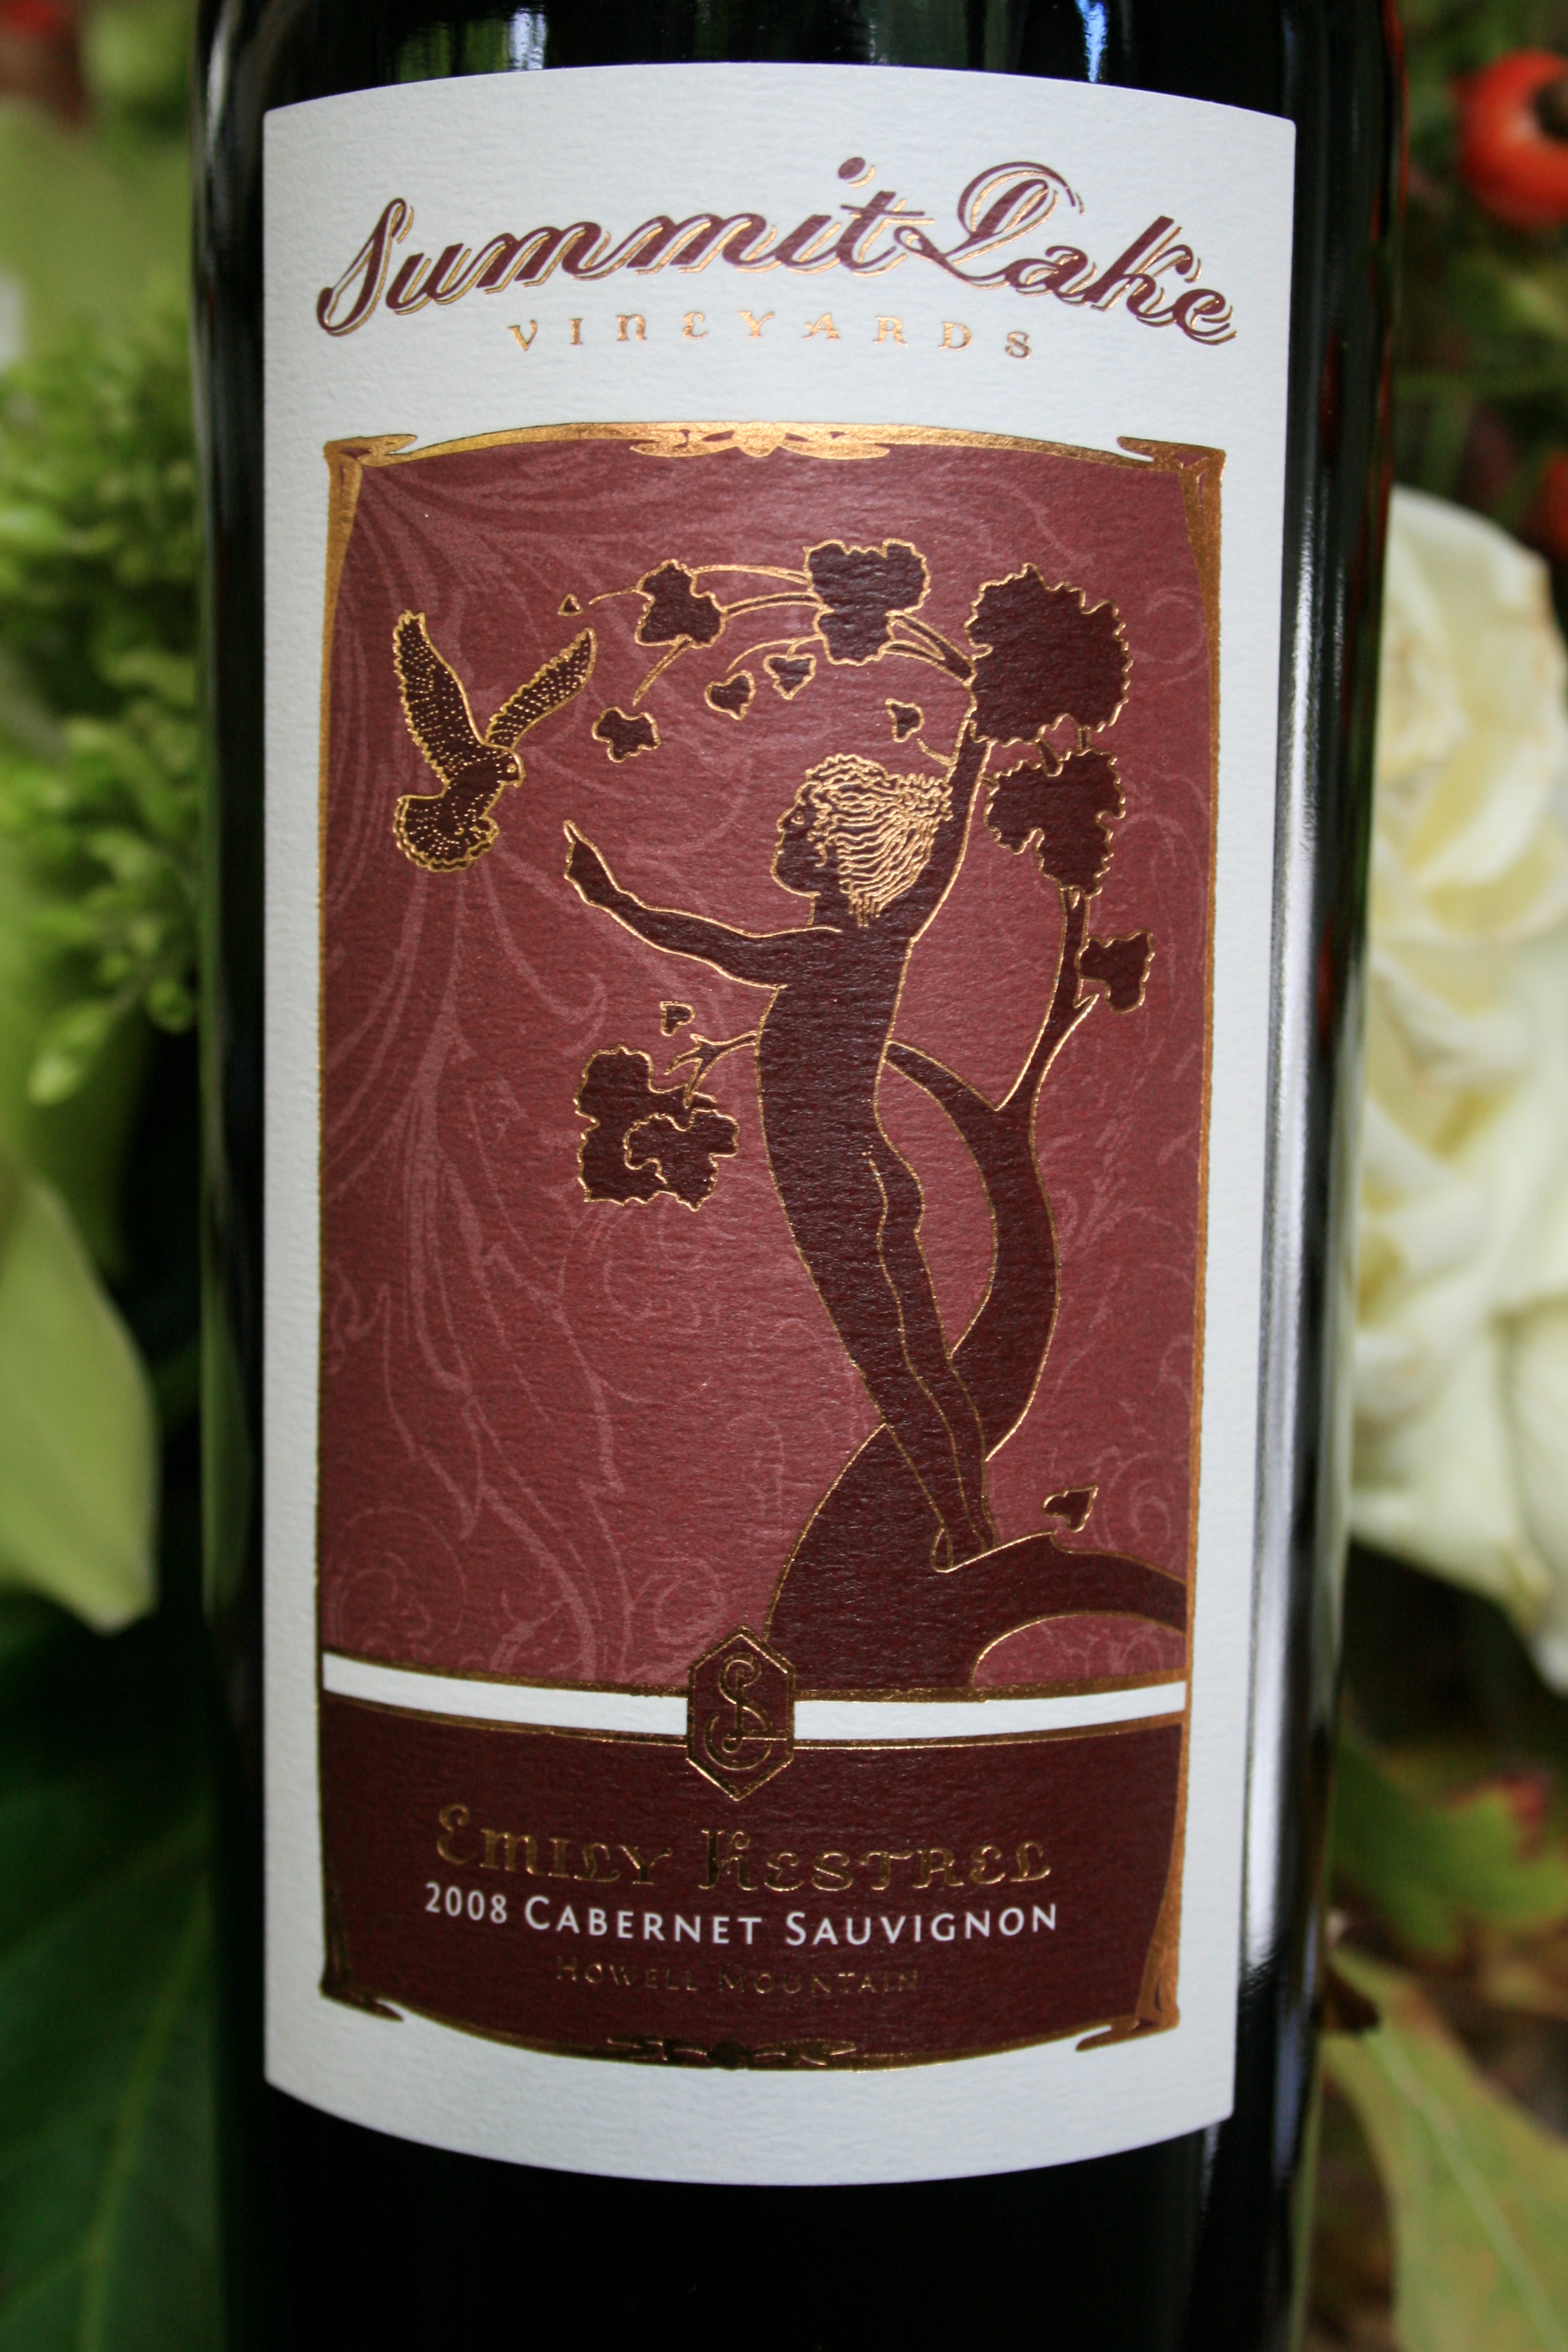 2010 Emily Kestrel Cabernet Sauvignon Howell Mountain, Napa Valley - Summit Lake Vineyards & Winery